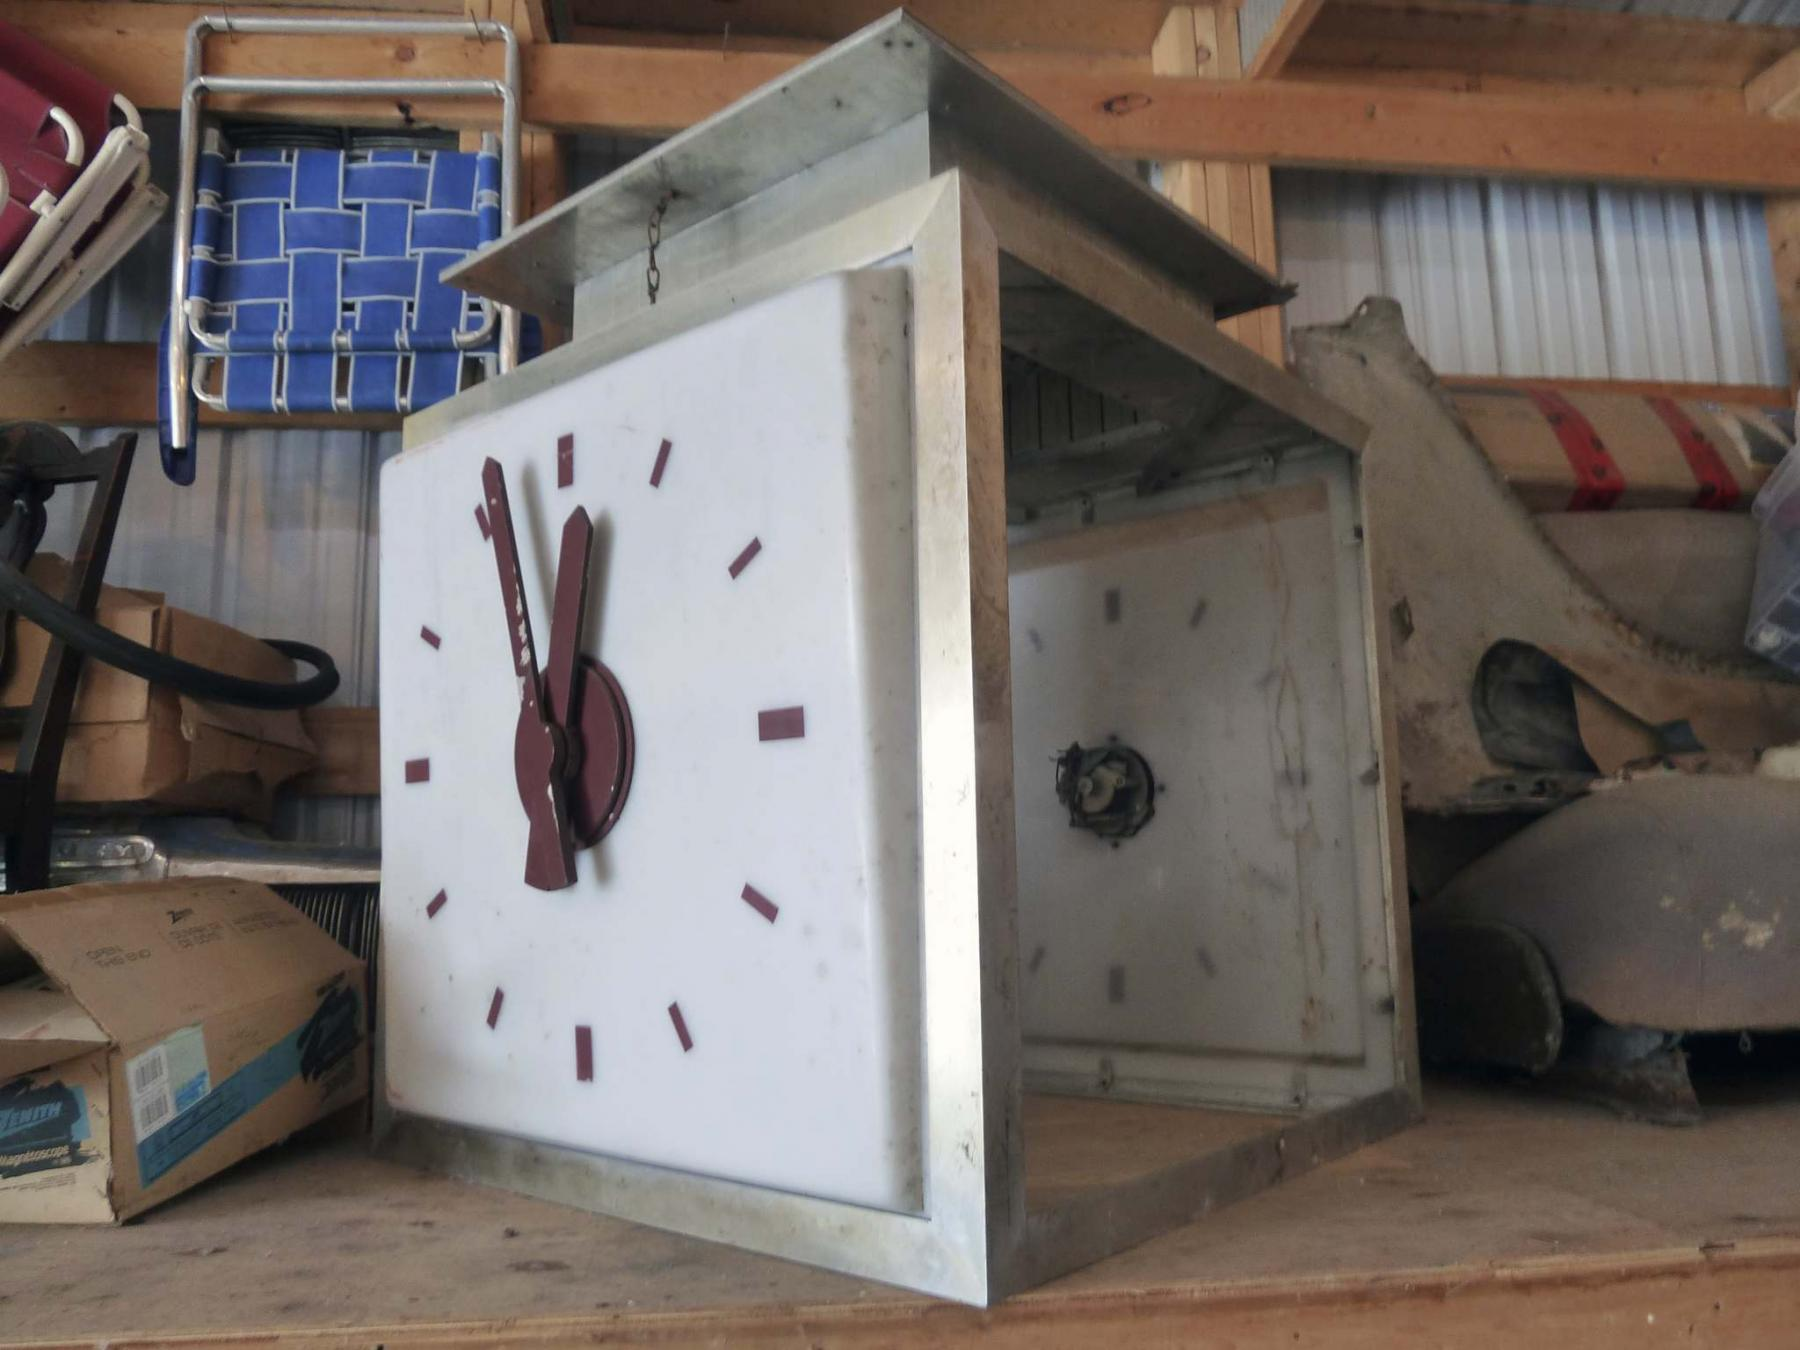 <p>Laurie Mustard / Winnipeg Free Press</p><p>This old clock was once a popular meeting place at the downtown Eaton's department store. Laurie Mustard plans to spend some time restoring it while he's practising social distancing. </p>